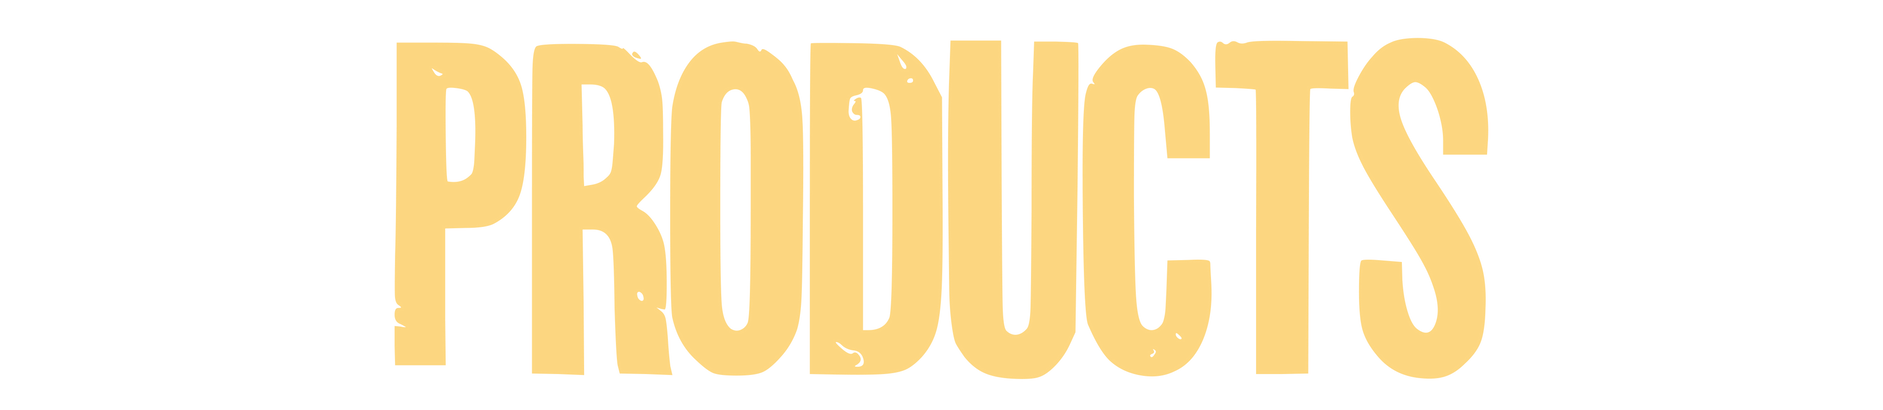 PRODUCTS_OPAQUE.png